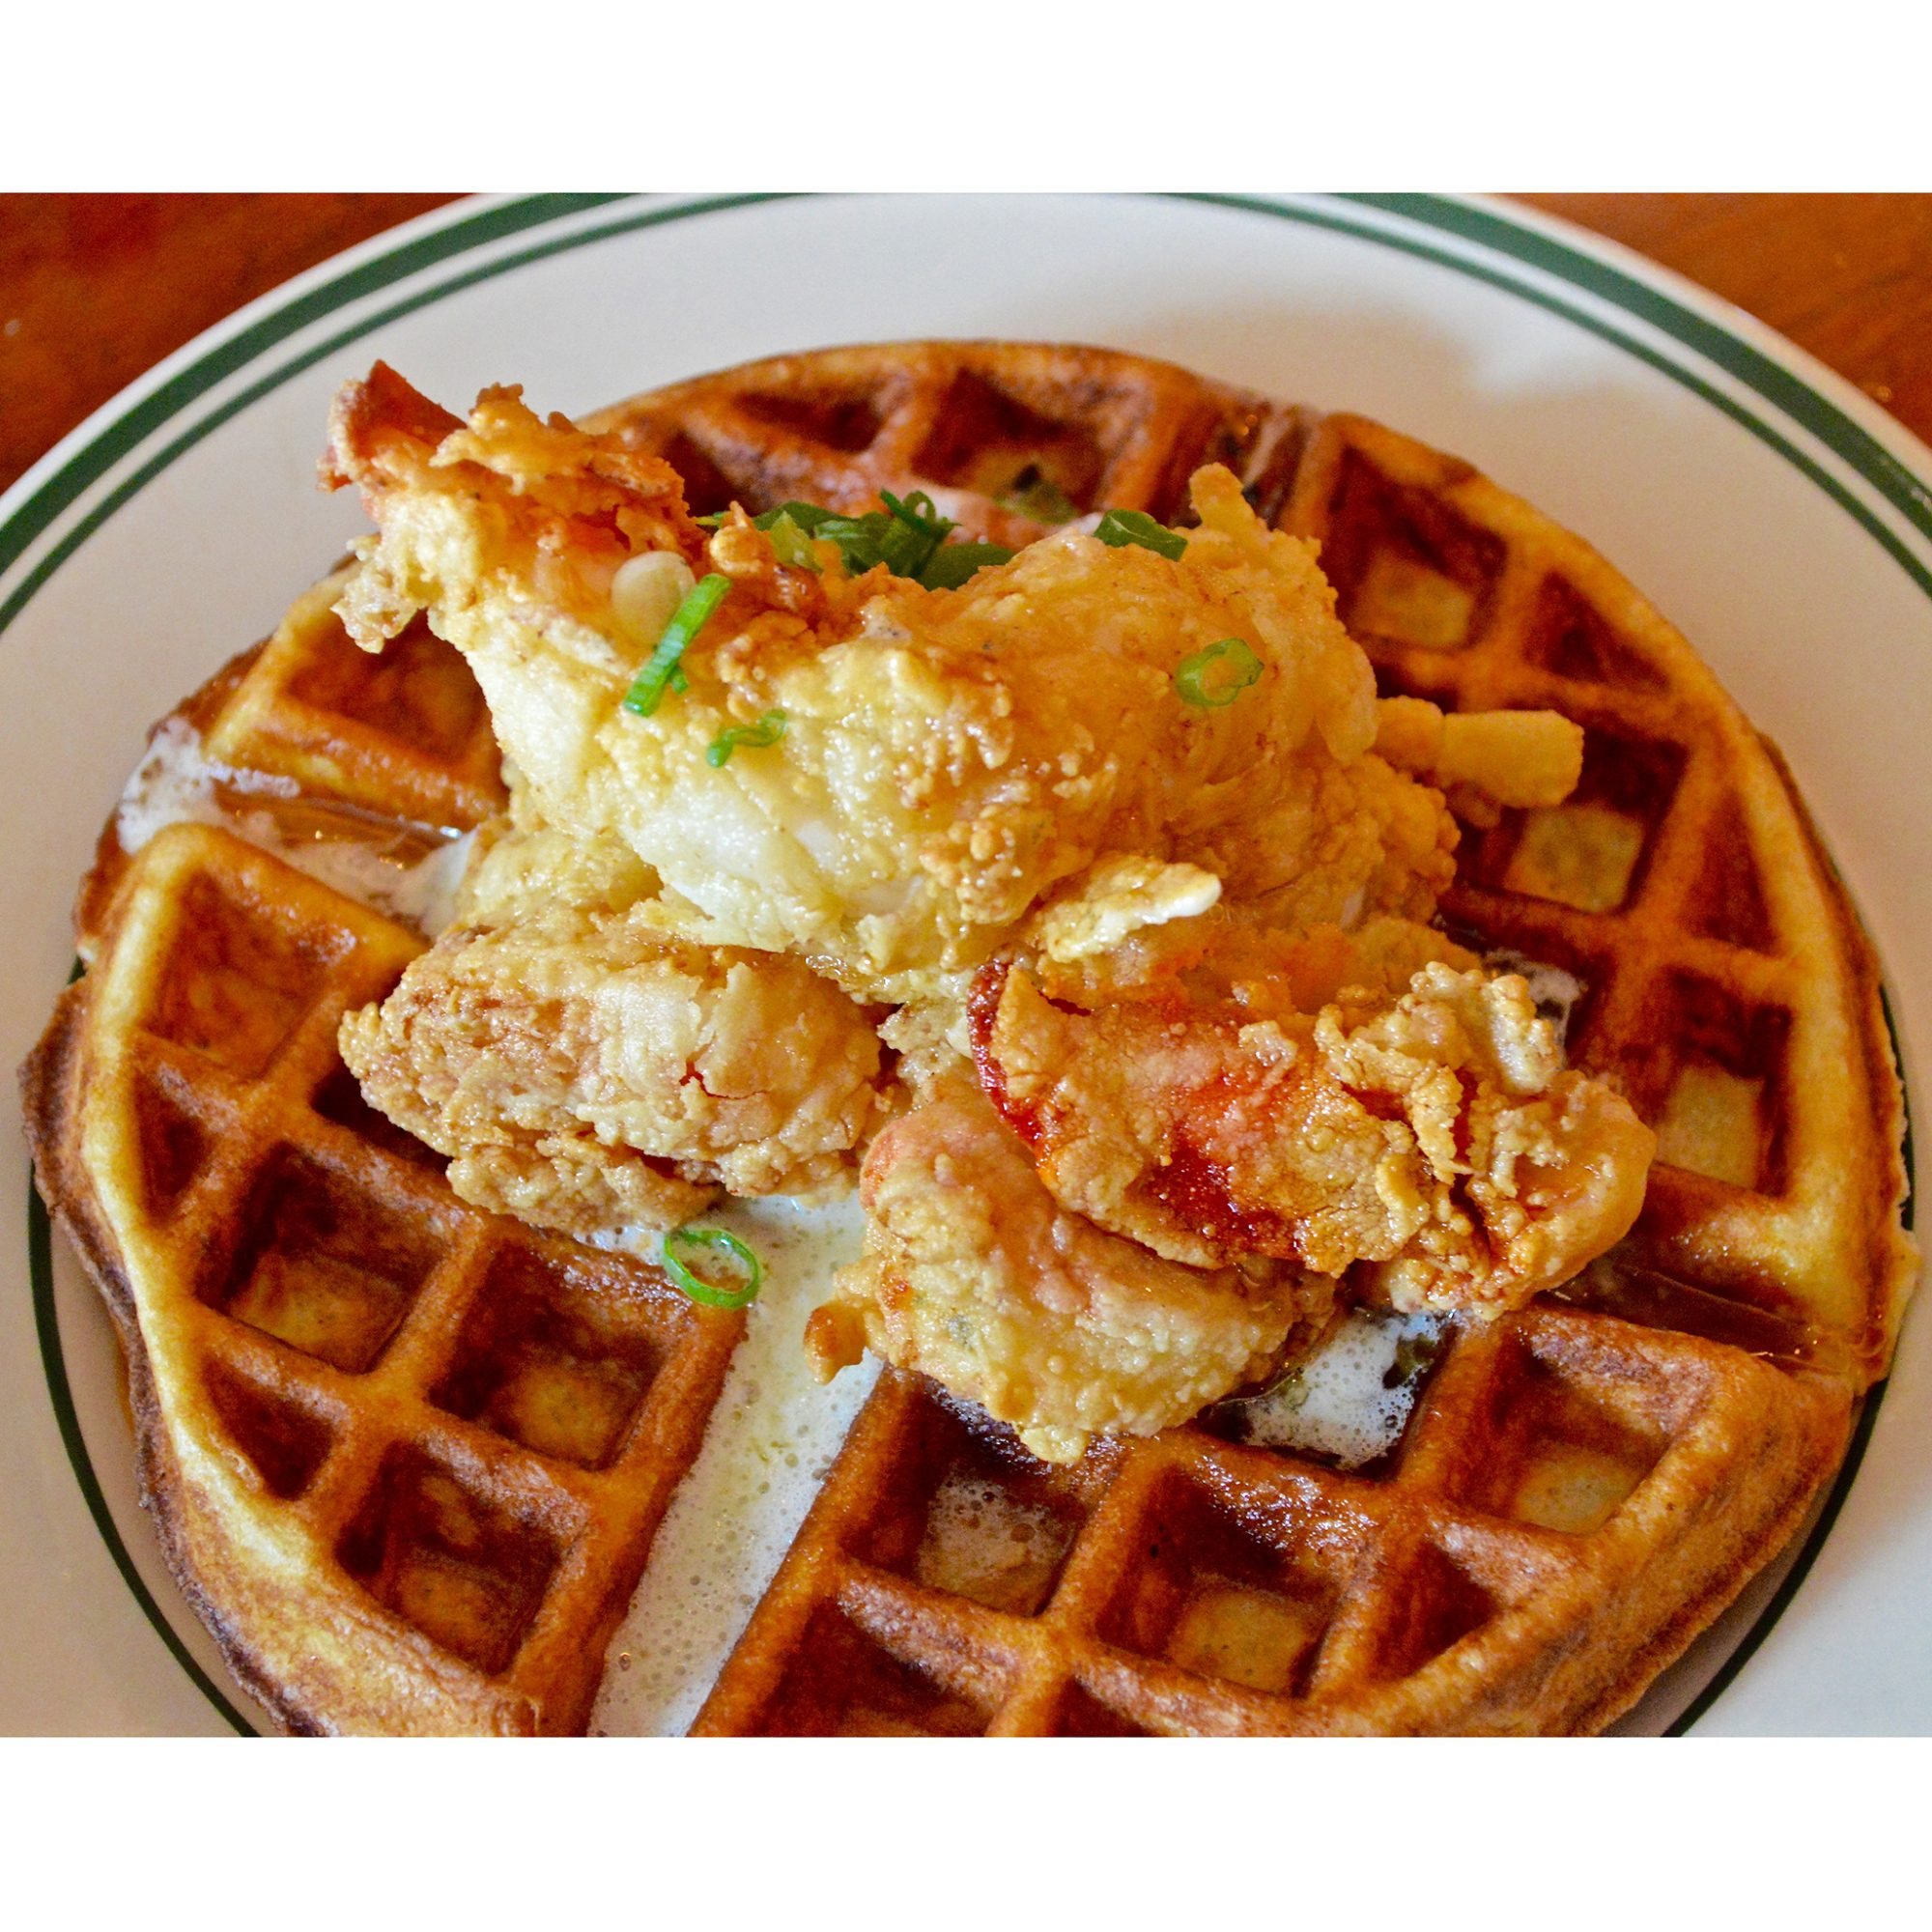 Saltie Girl, Fried Lobster and Waffle